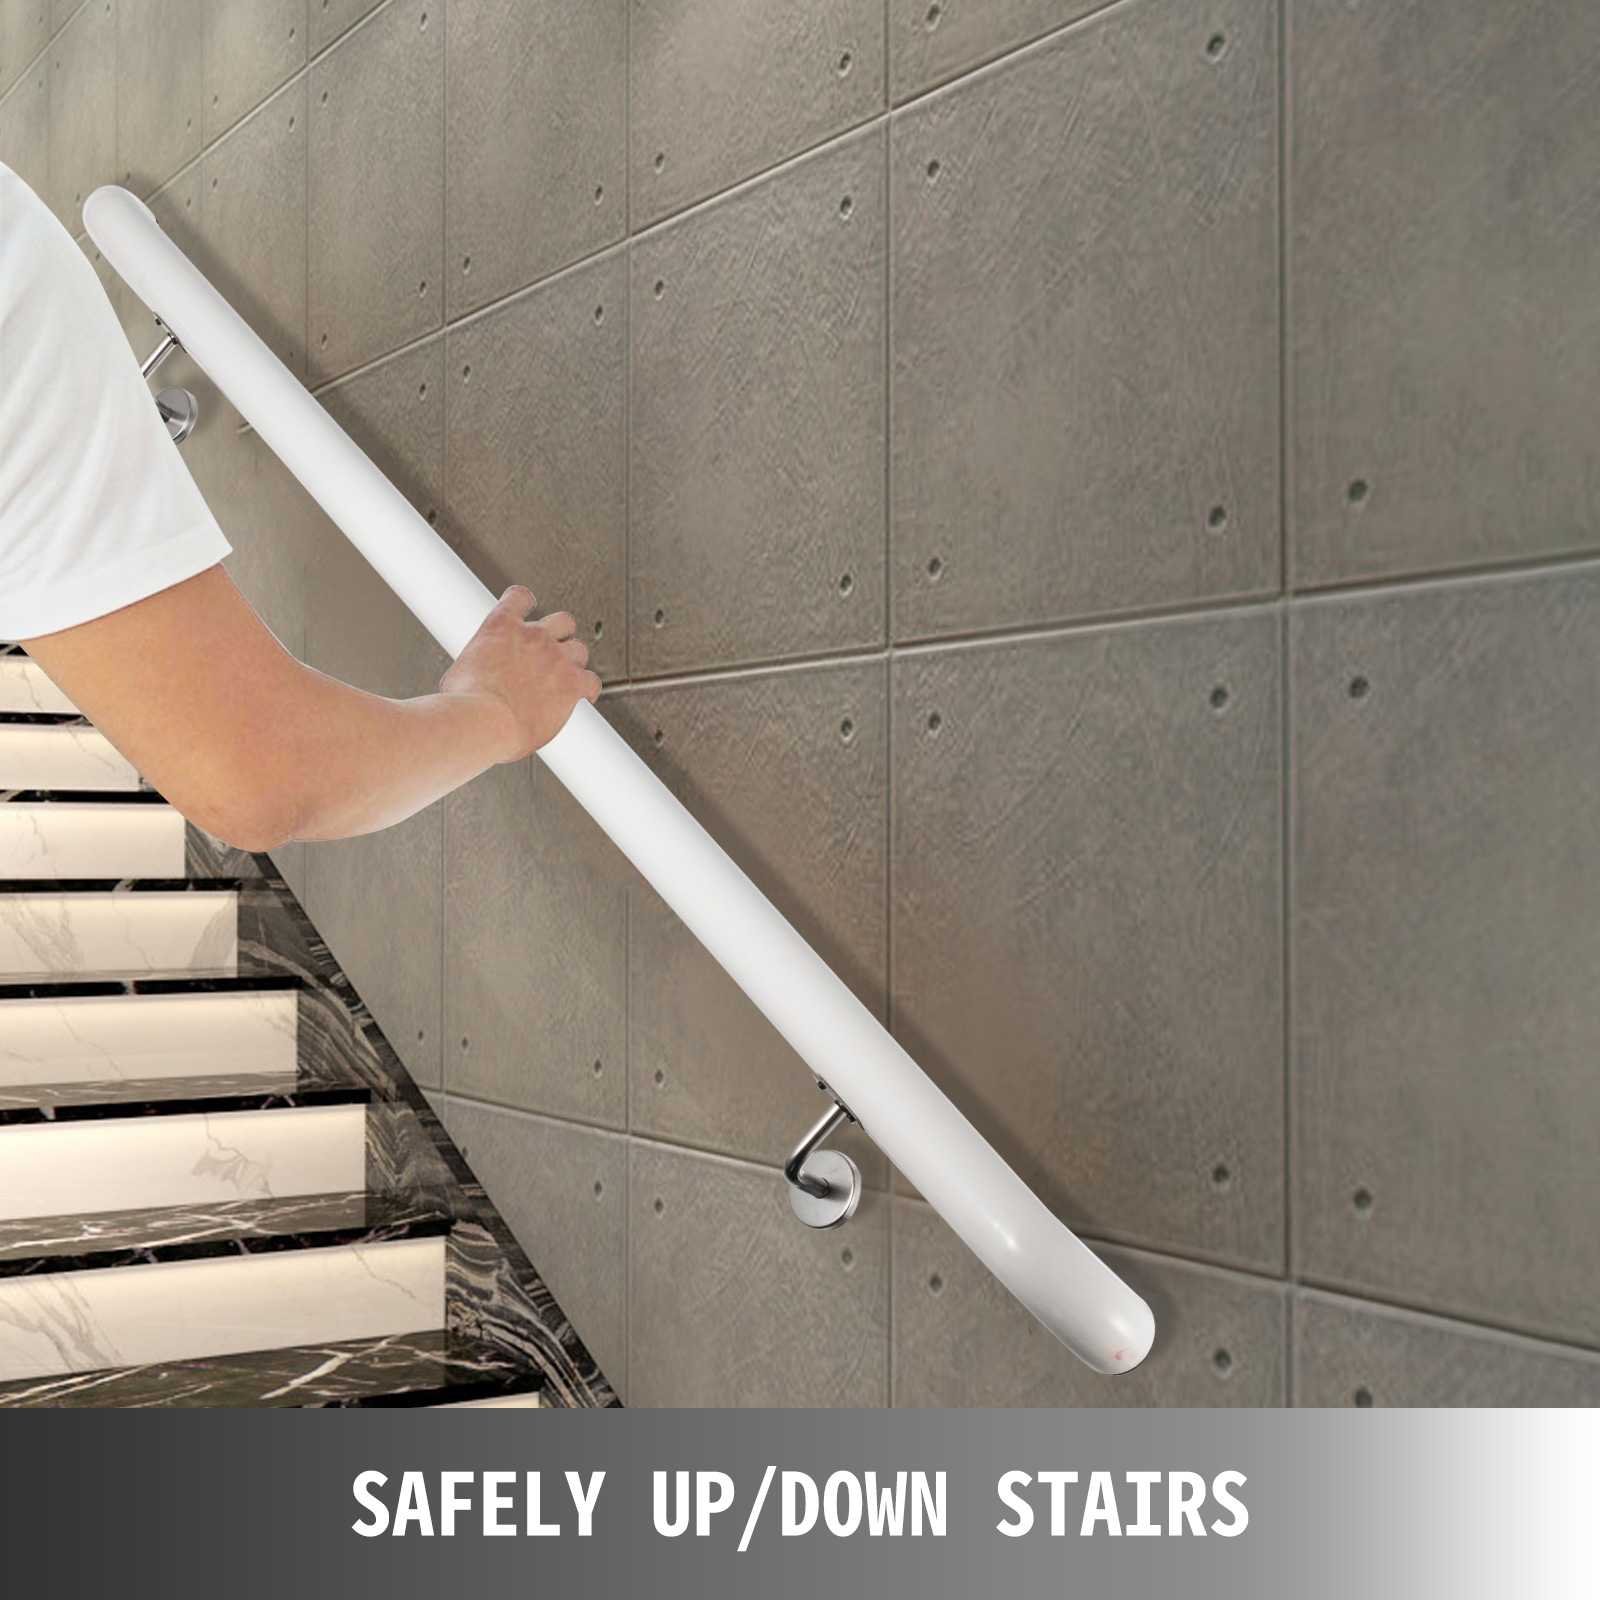 Stair-Handrail-Stair-Rail-Aluminum-Indoor-Handrail-for-Stairs-3-16-039-White-200lbs thumbnail 15